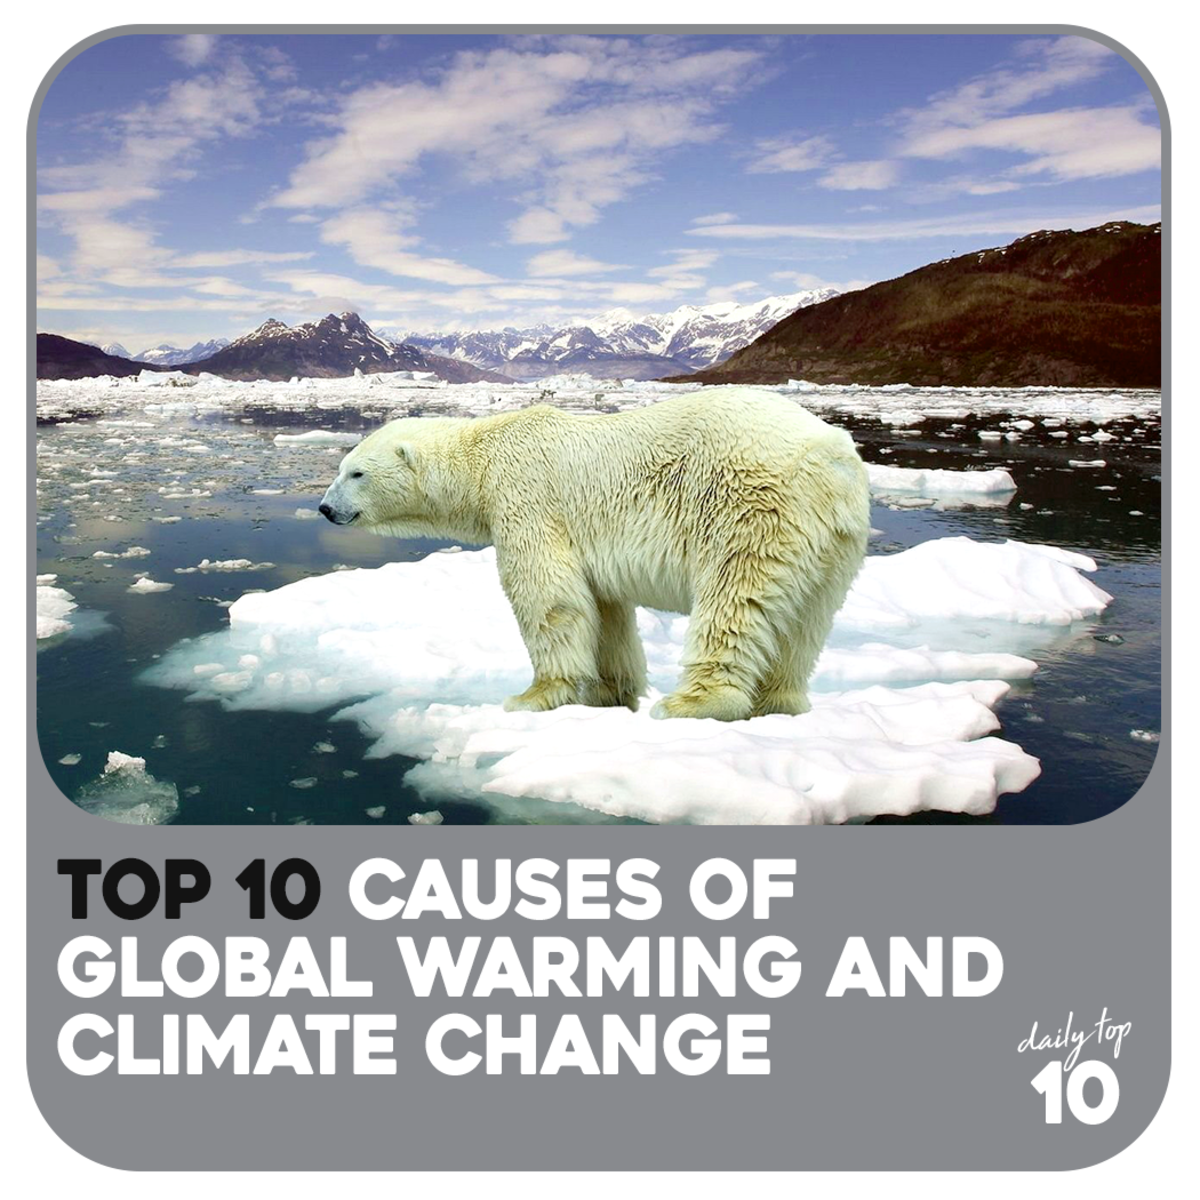 Top 10 Causes of Global Warming and Climate Change